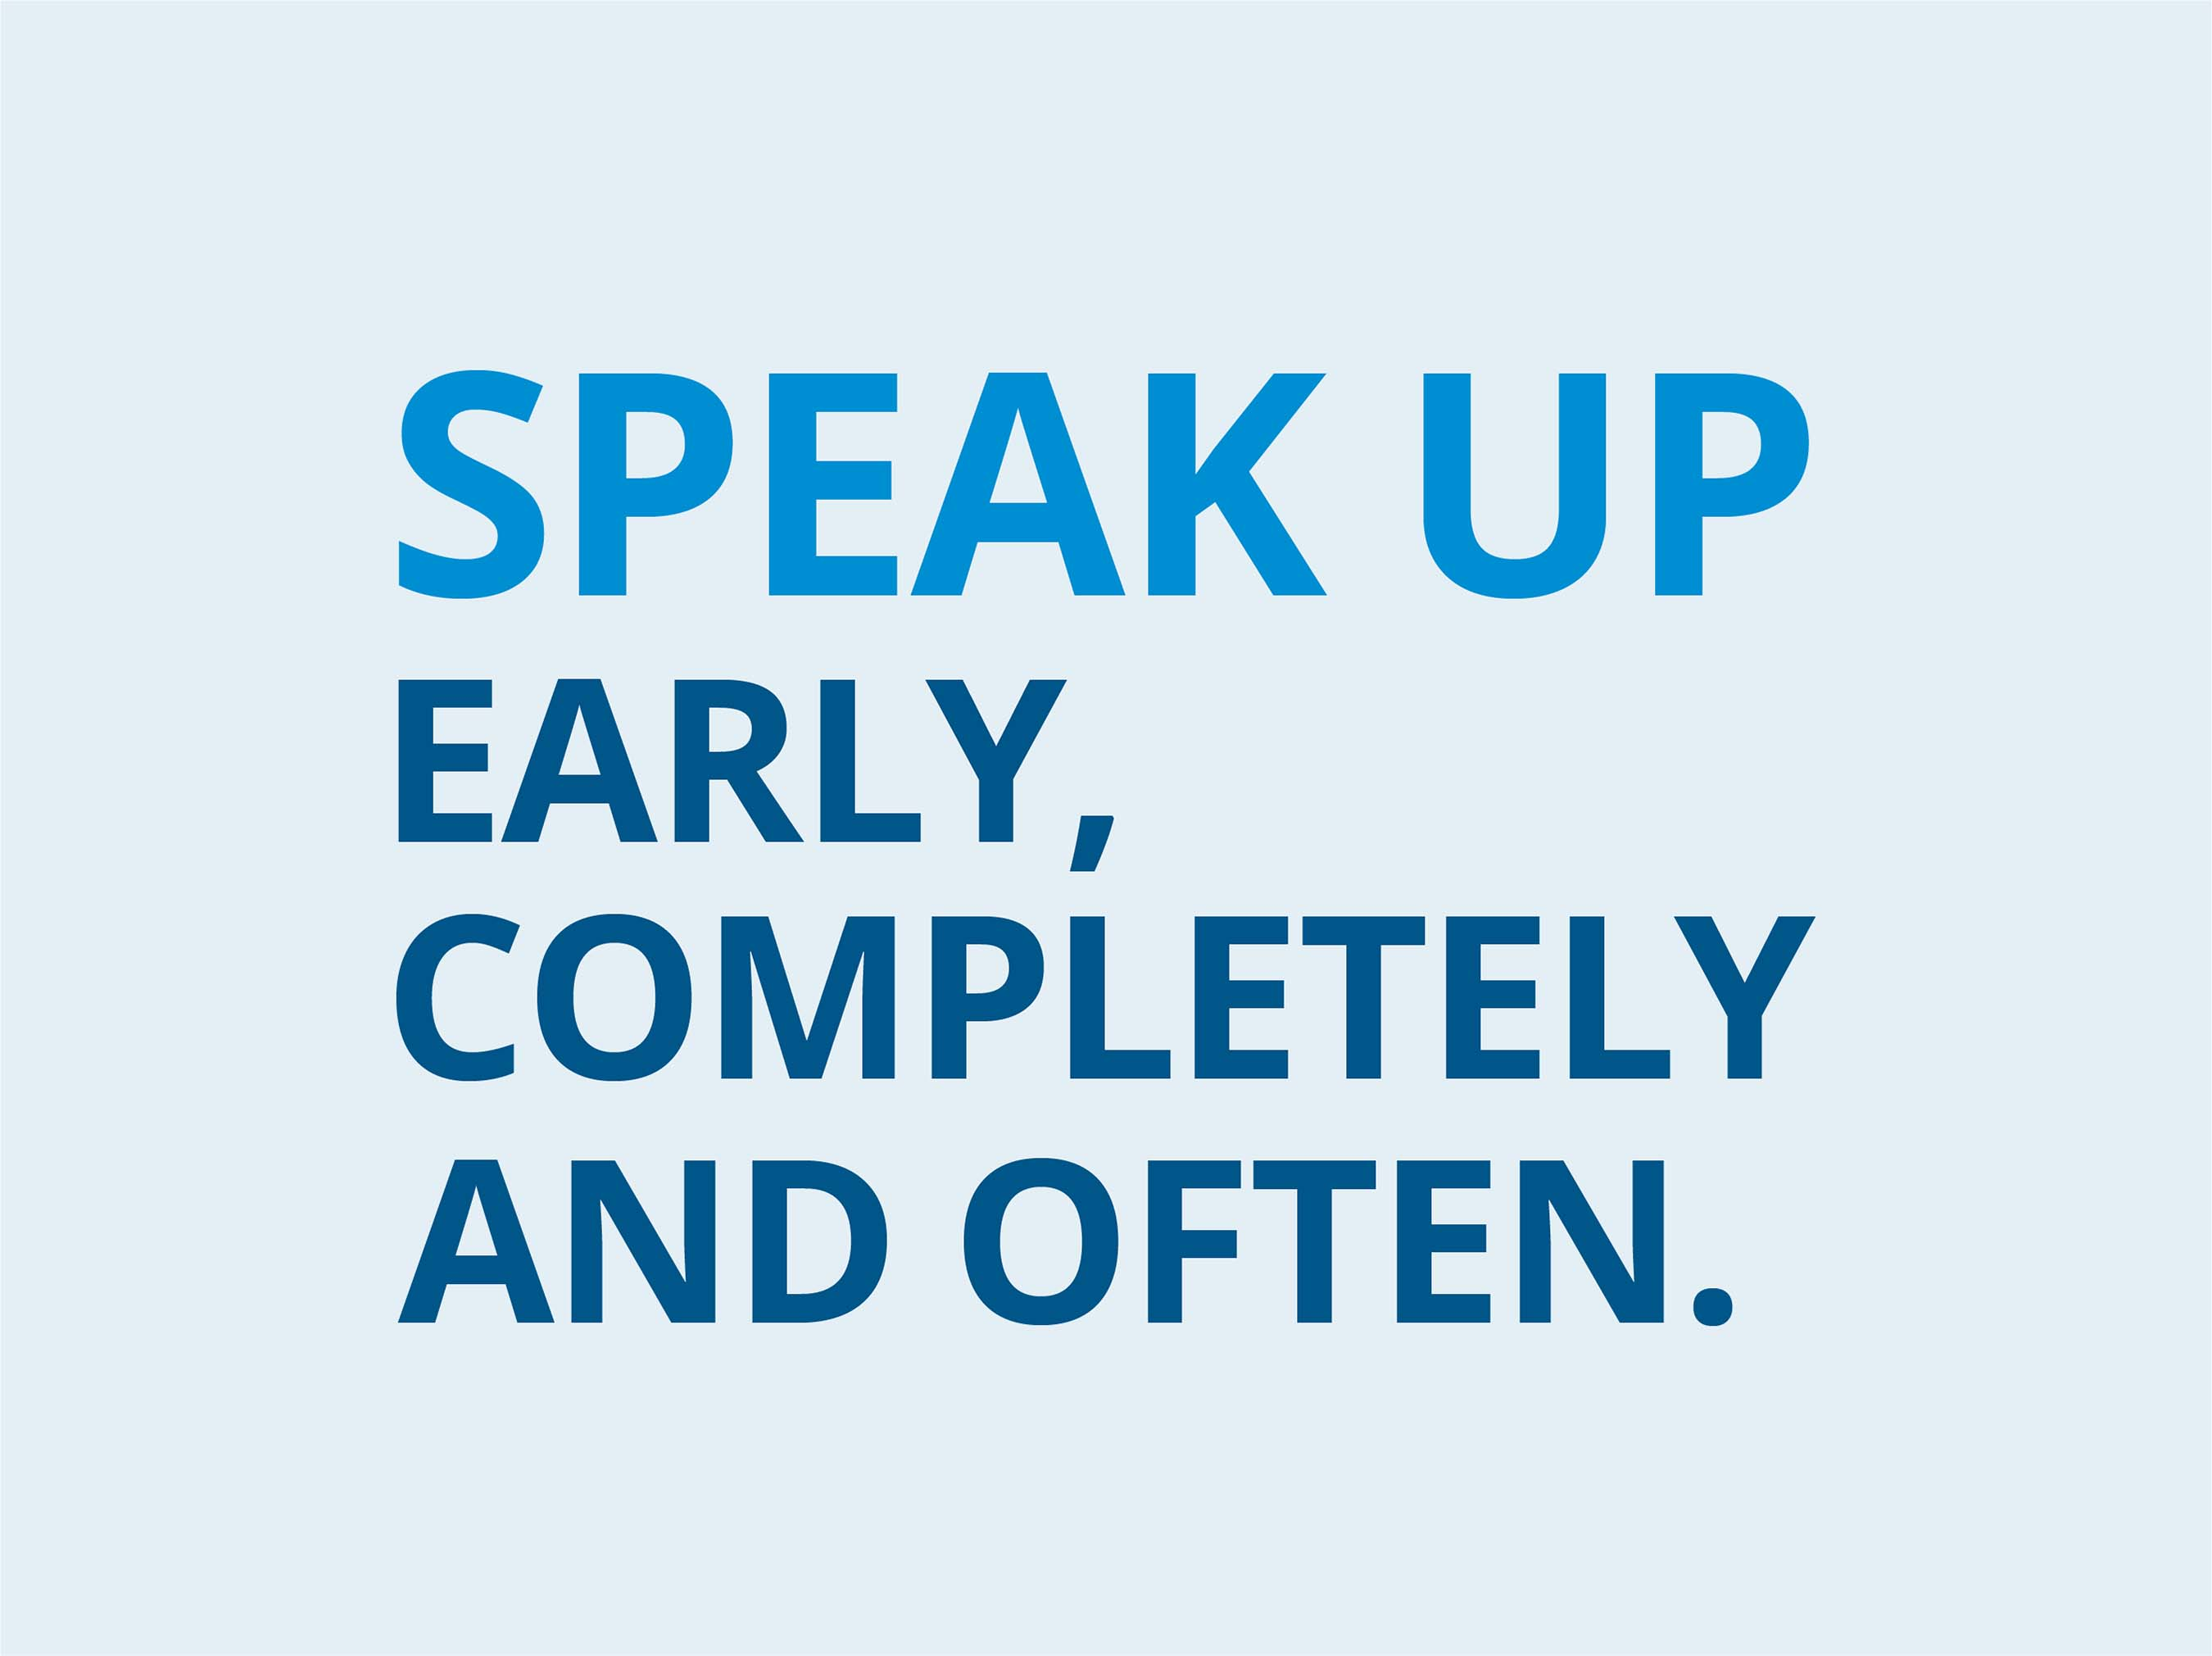 The American Gastroenterological Association (AGA) recommends three steps to improve doctor-patient communication: speak up early, completely and often